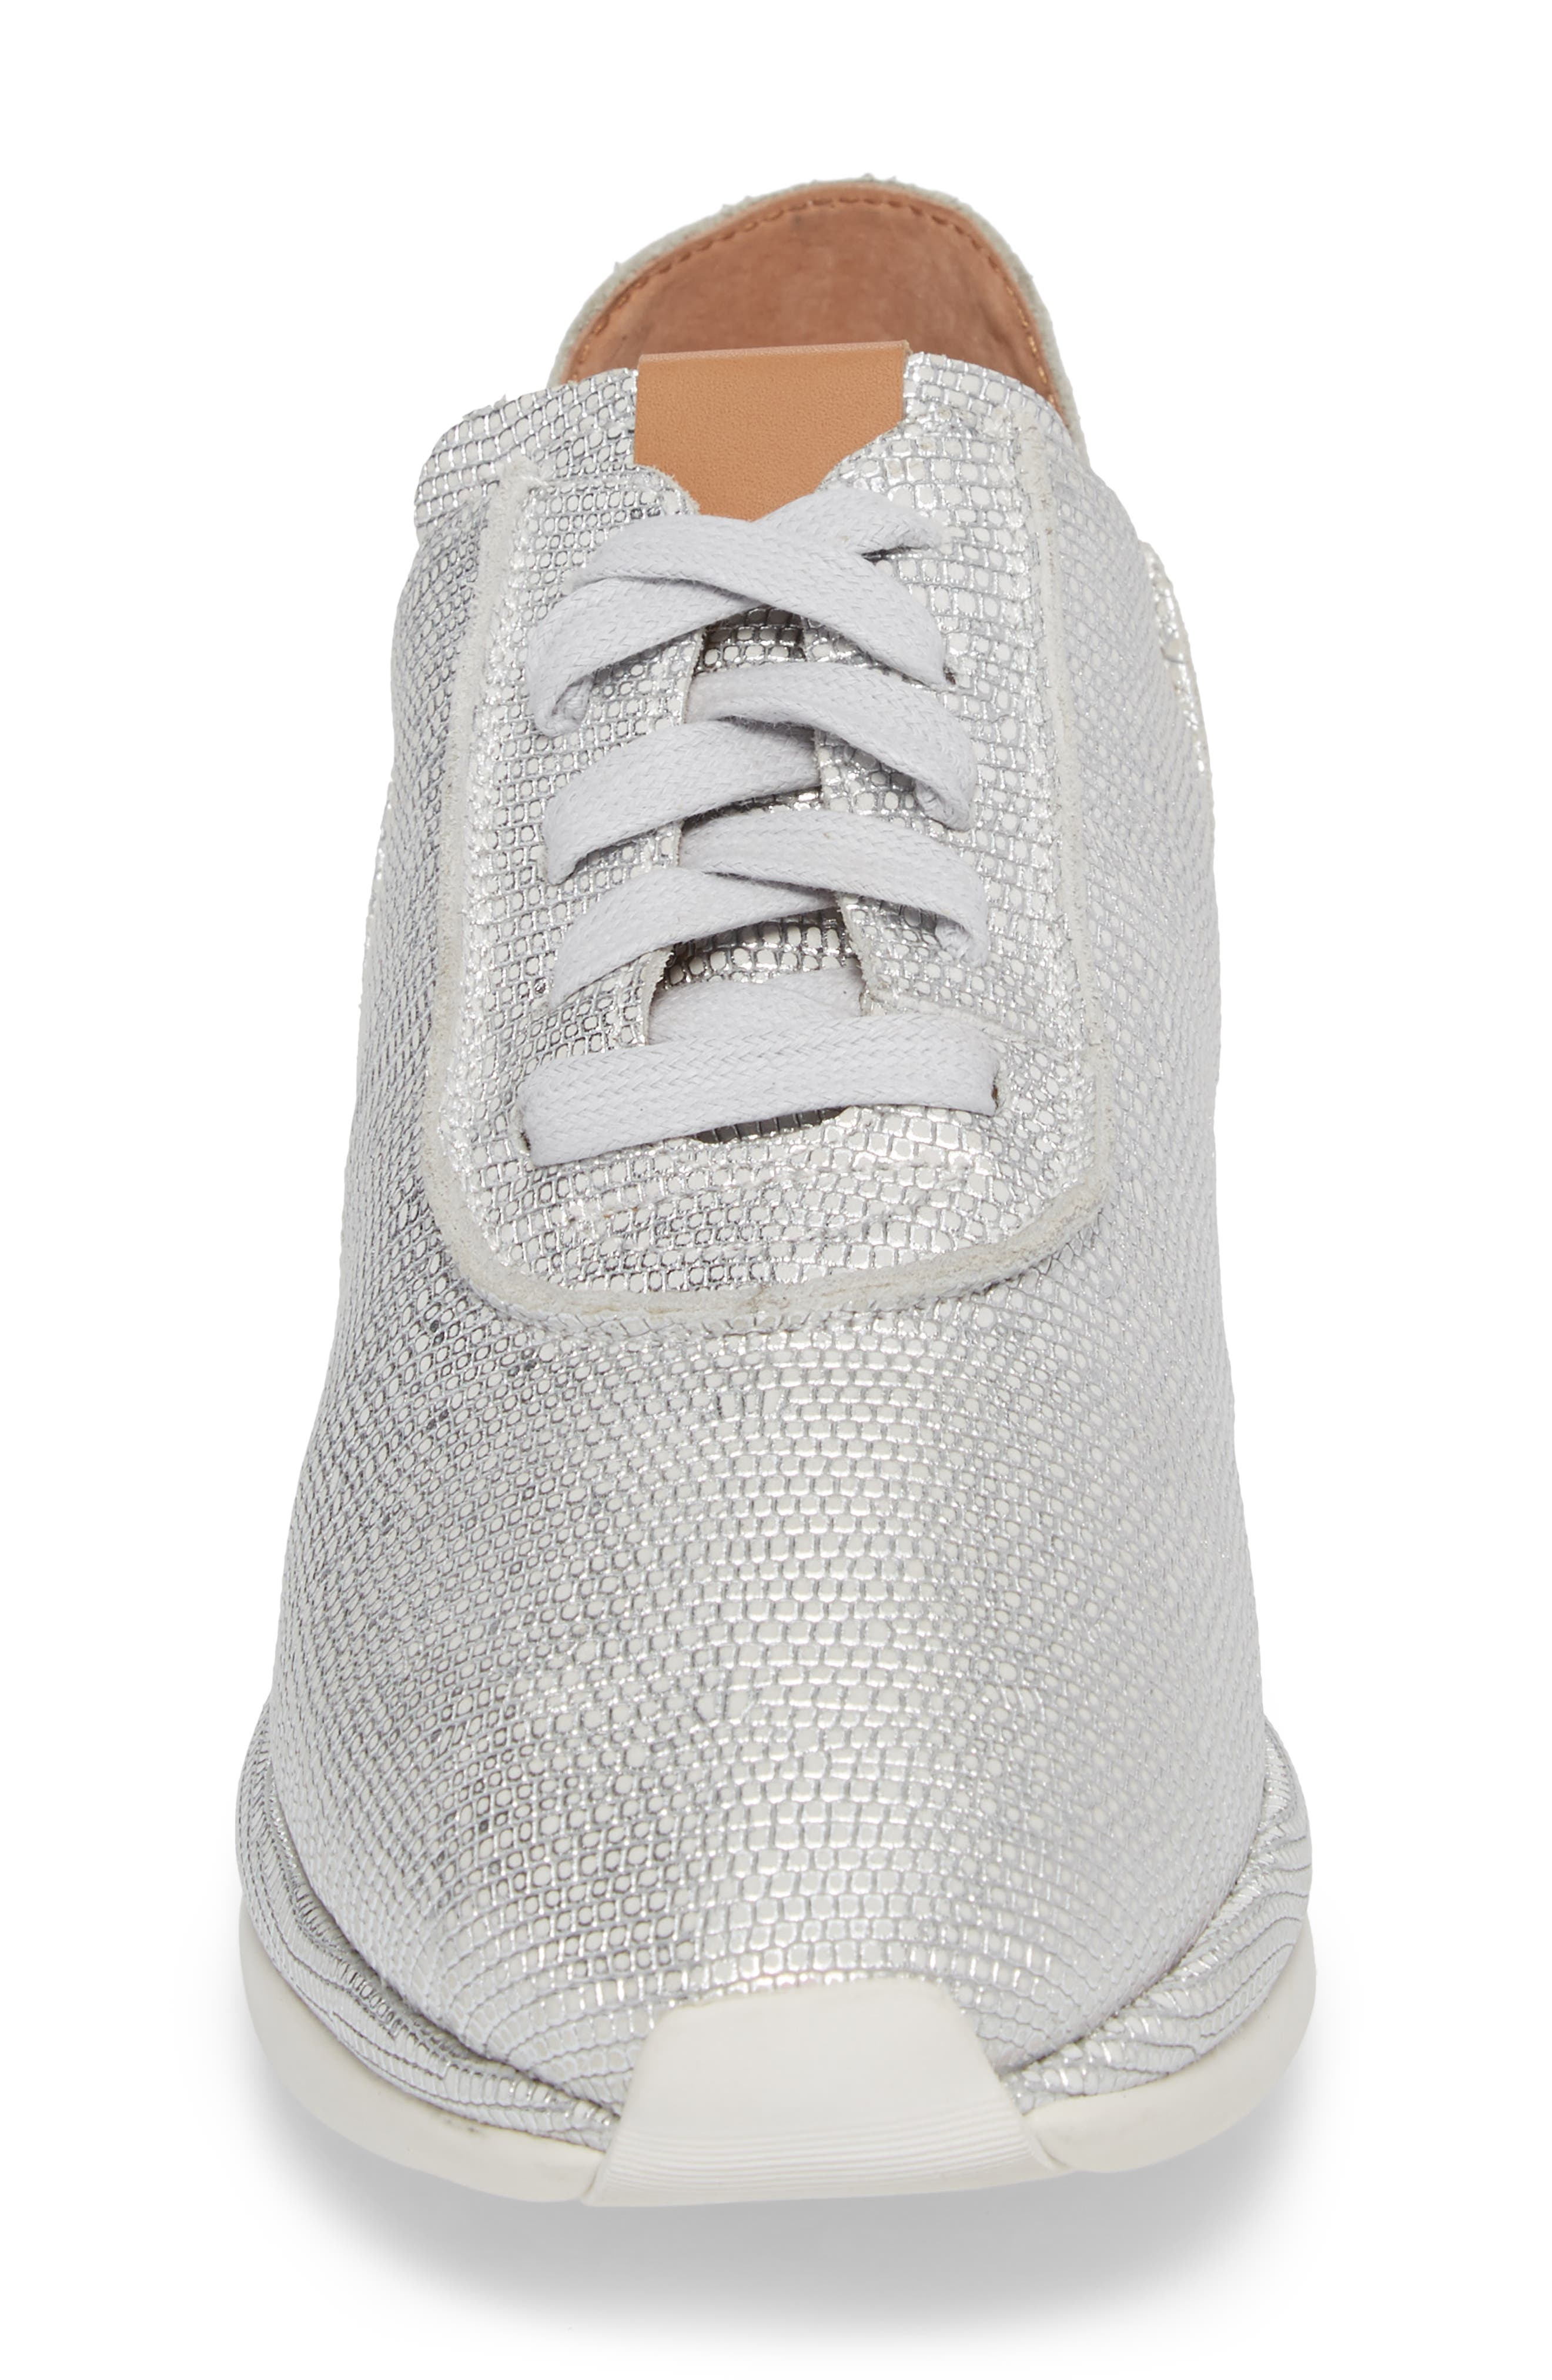 GENTLE SOULS BY KENNETH COLE, Raina Sneaker, Alternate thumbnail 4, color, WHITE/ SILVER LEATHER